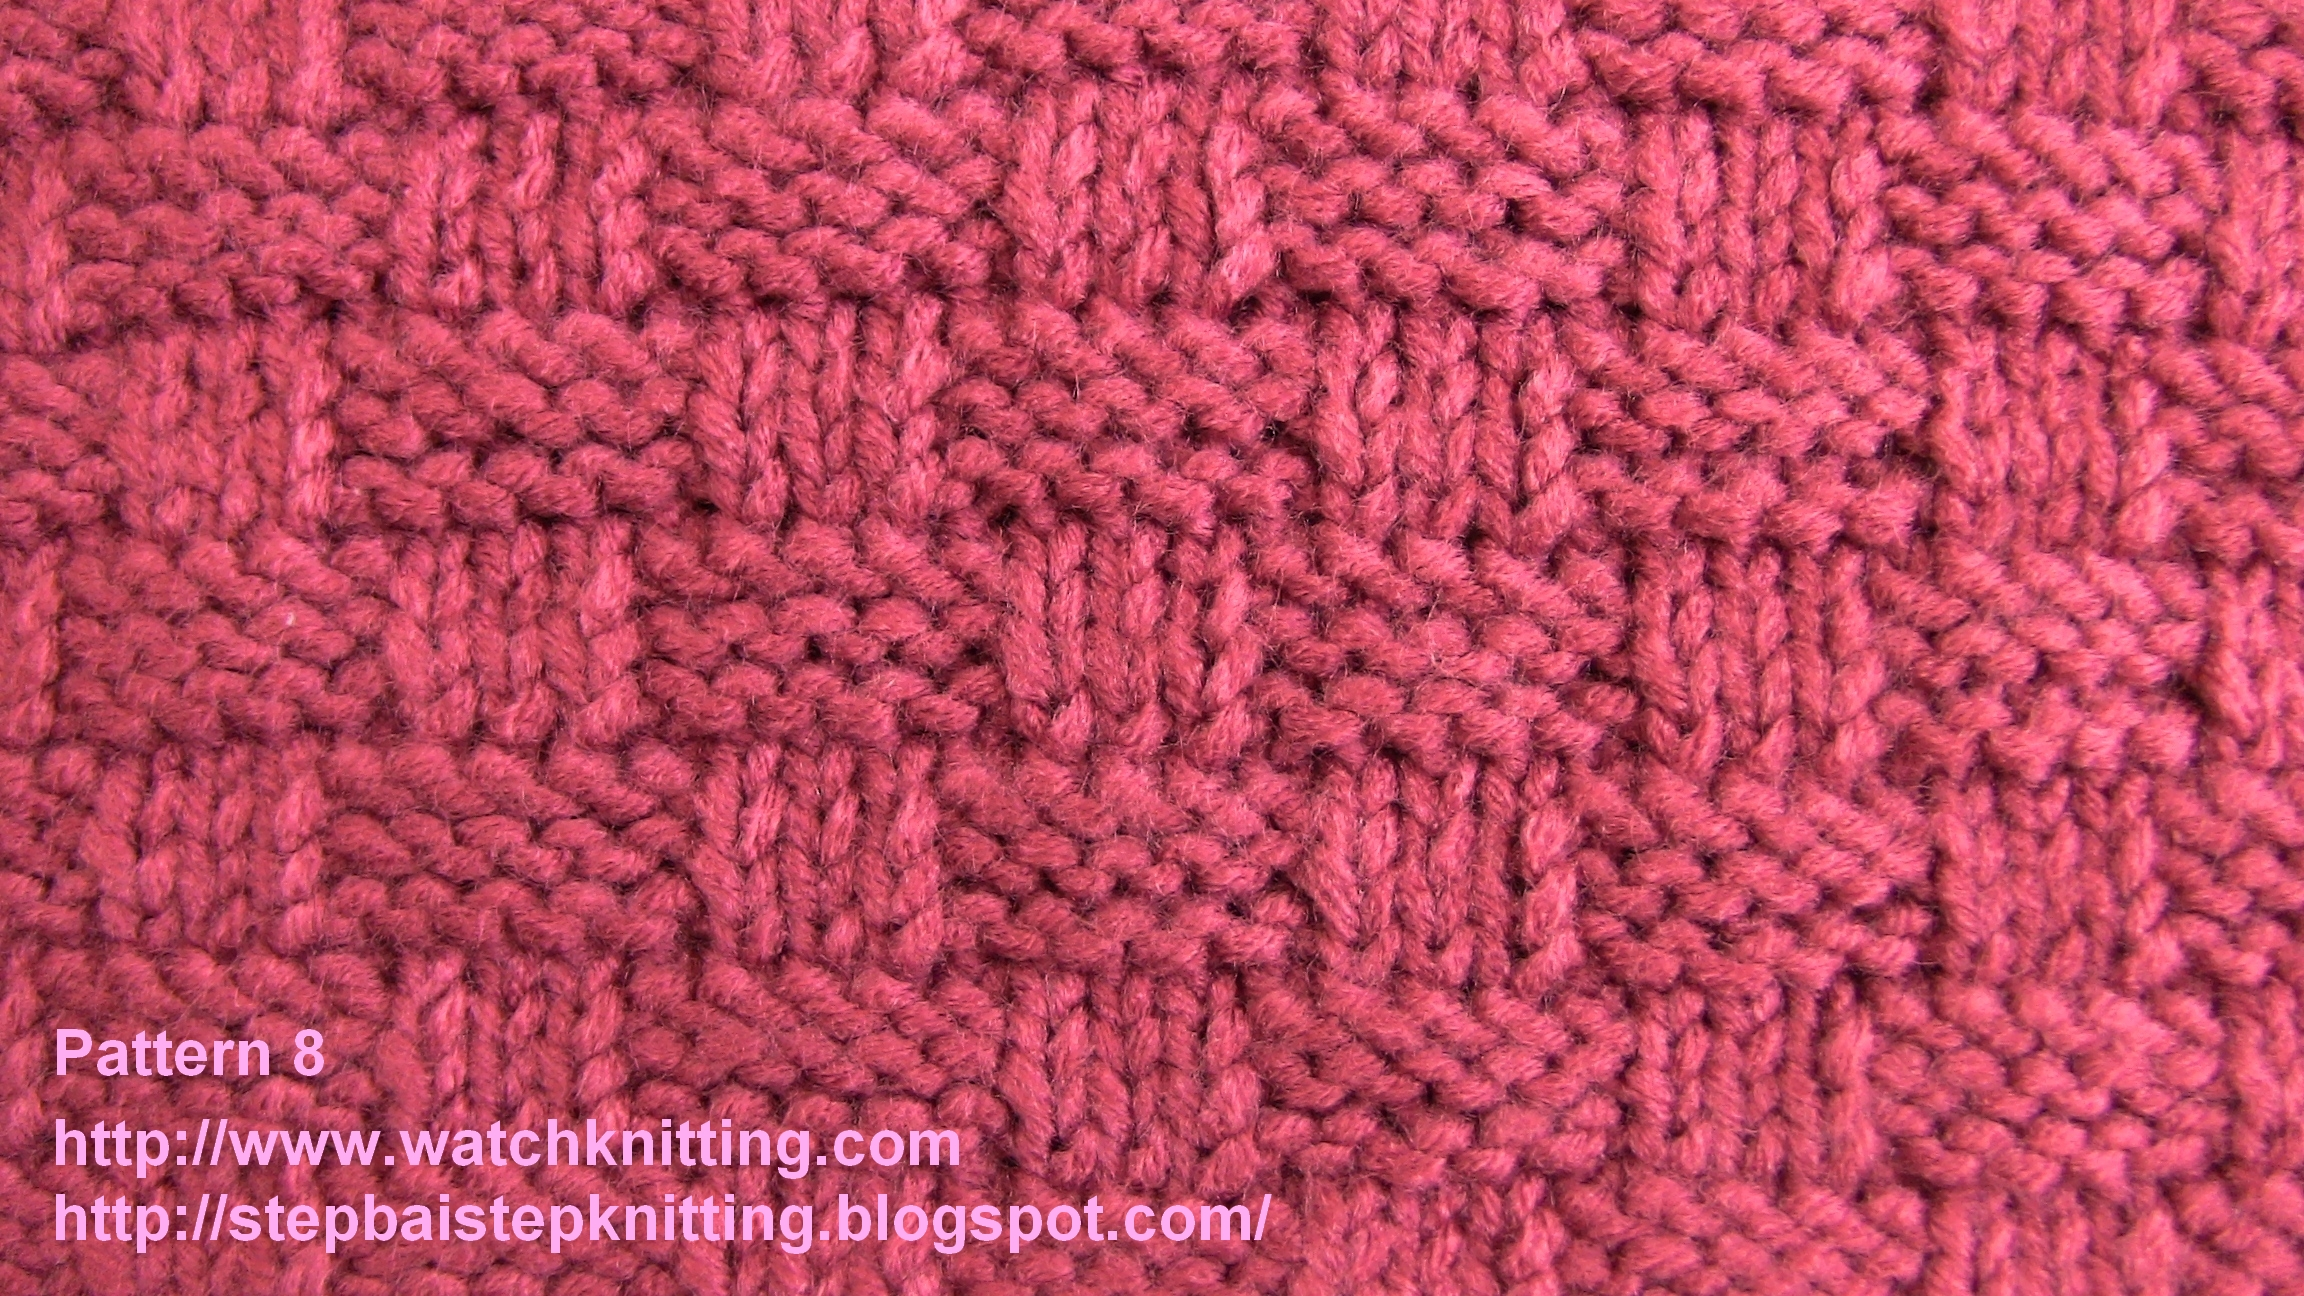 Basic Knitting Stitches Patterns : watch Simple Knitting Models - Pattern 8 (Basket model)